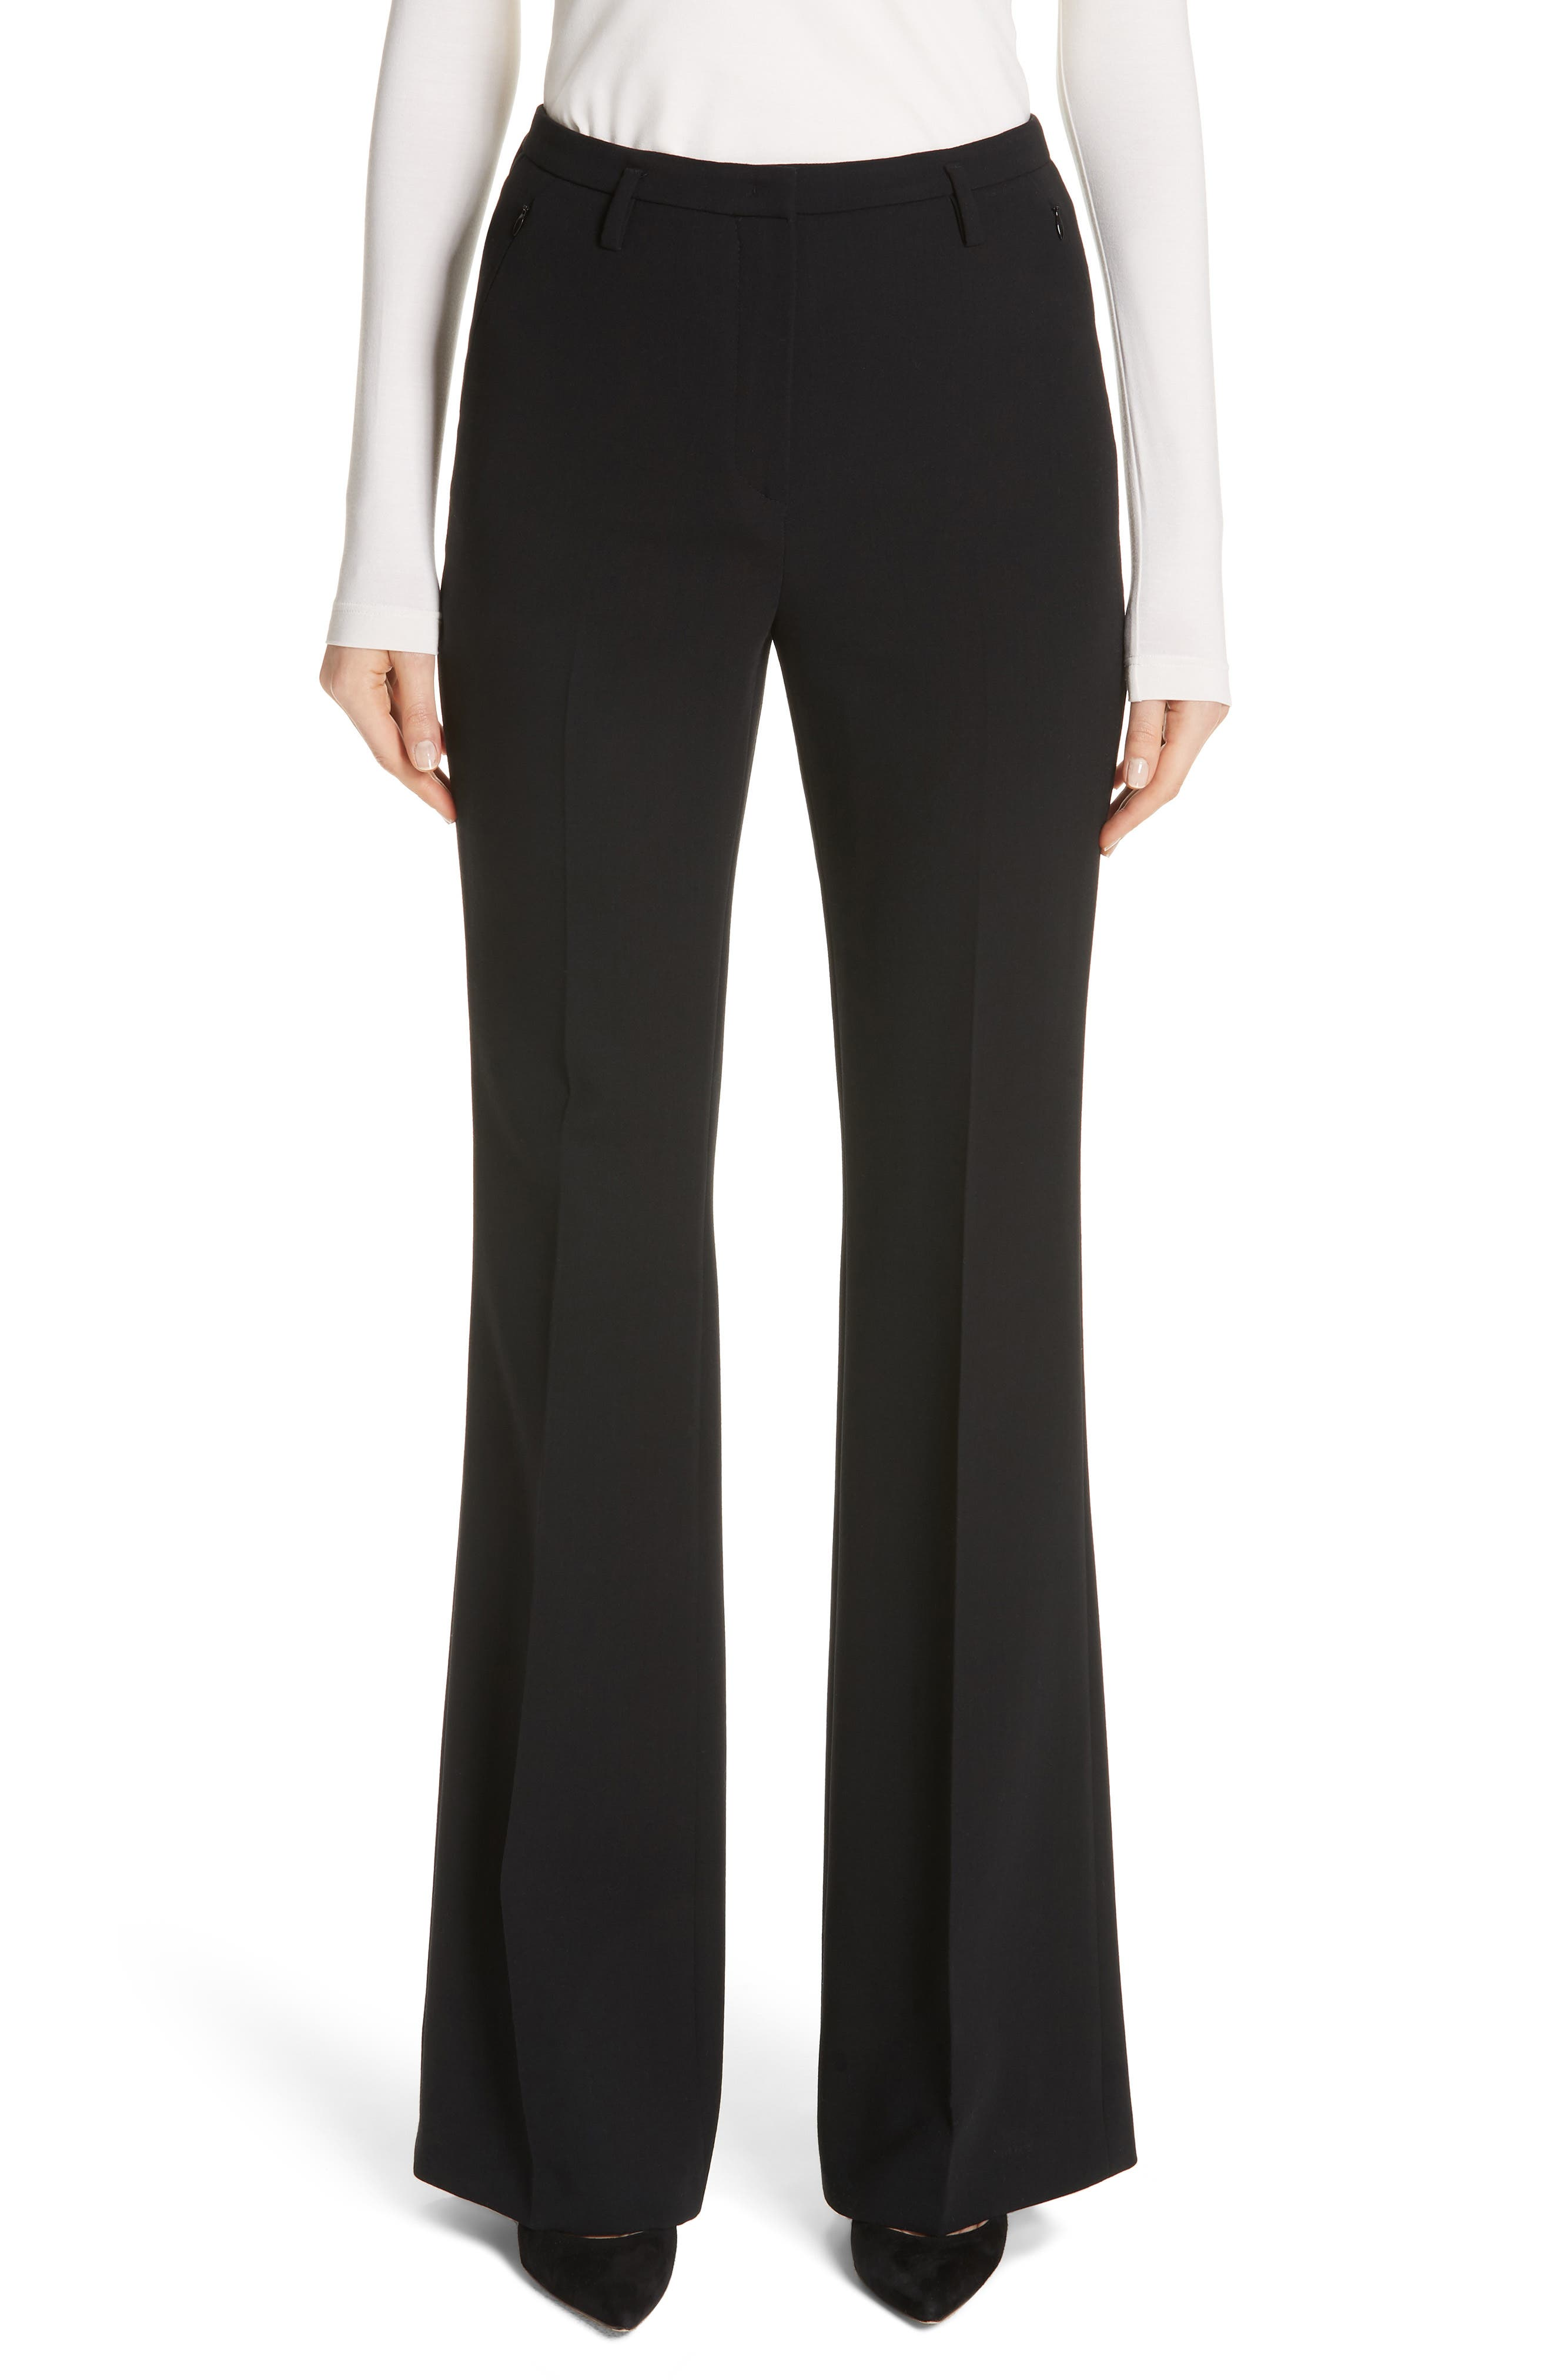 Farrah Stretch Wool Flare Pants,                         Main,                         color, Black